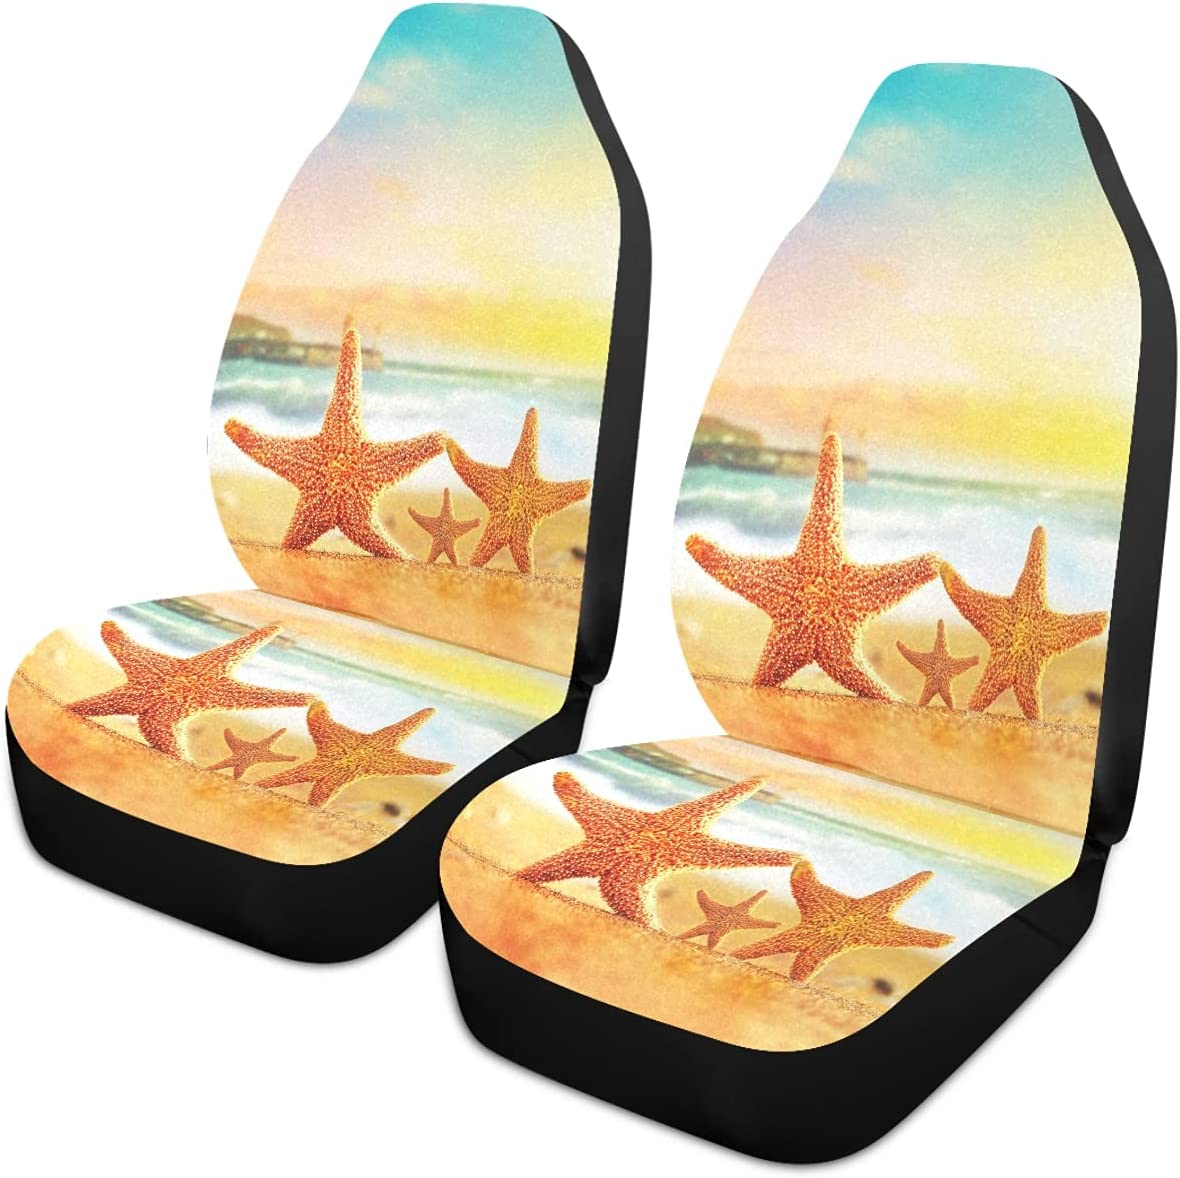 Sale price Oarencol Summer Family Starfish Beach Sandy Car Univ Easy-to-use Seat Covers